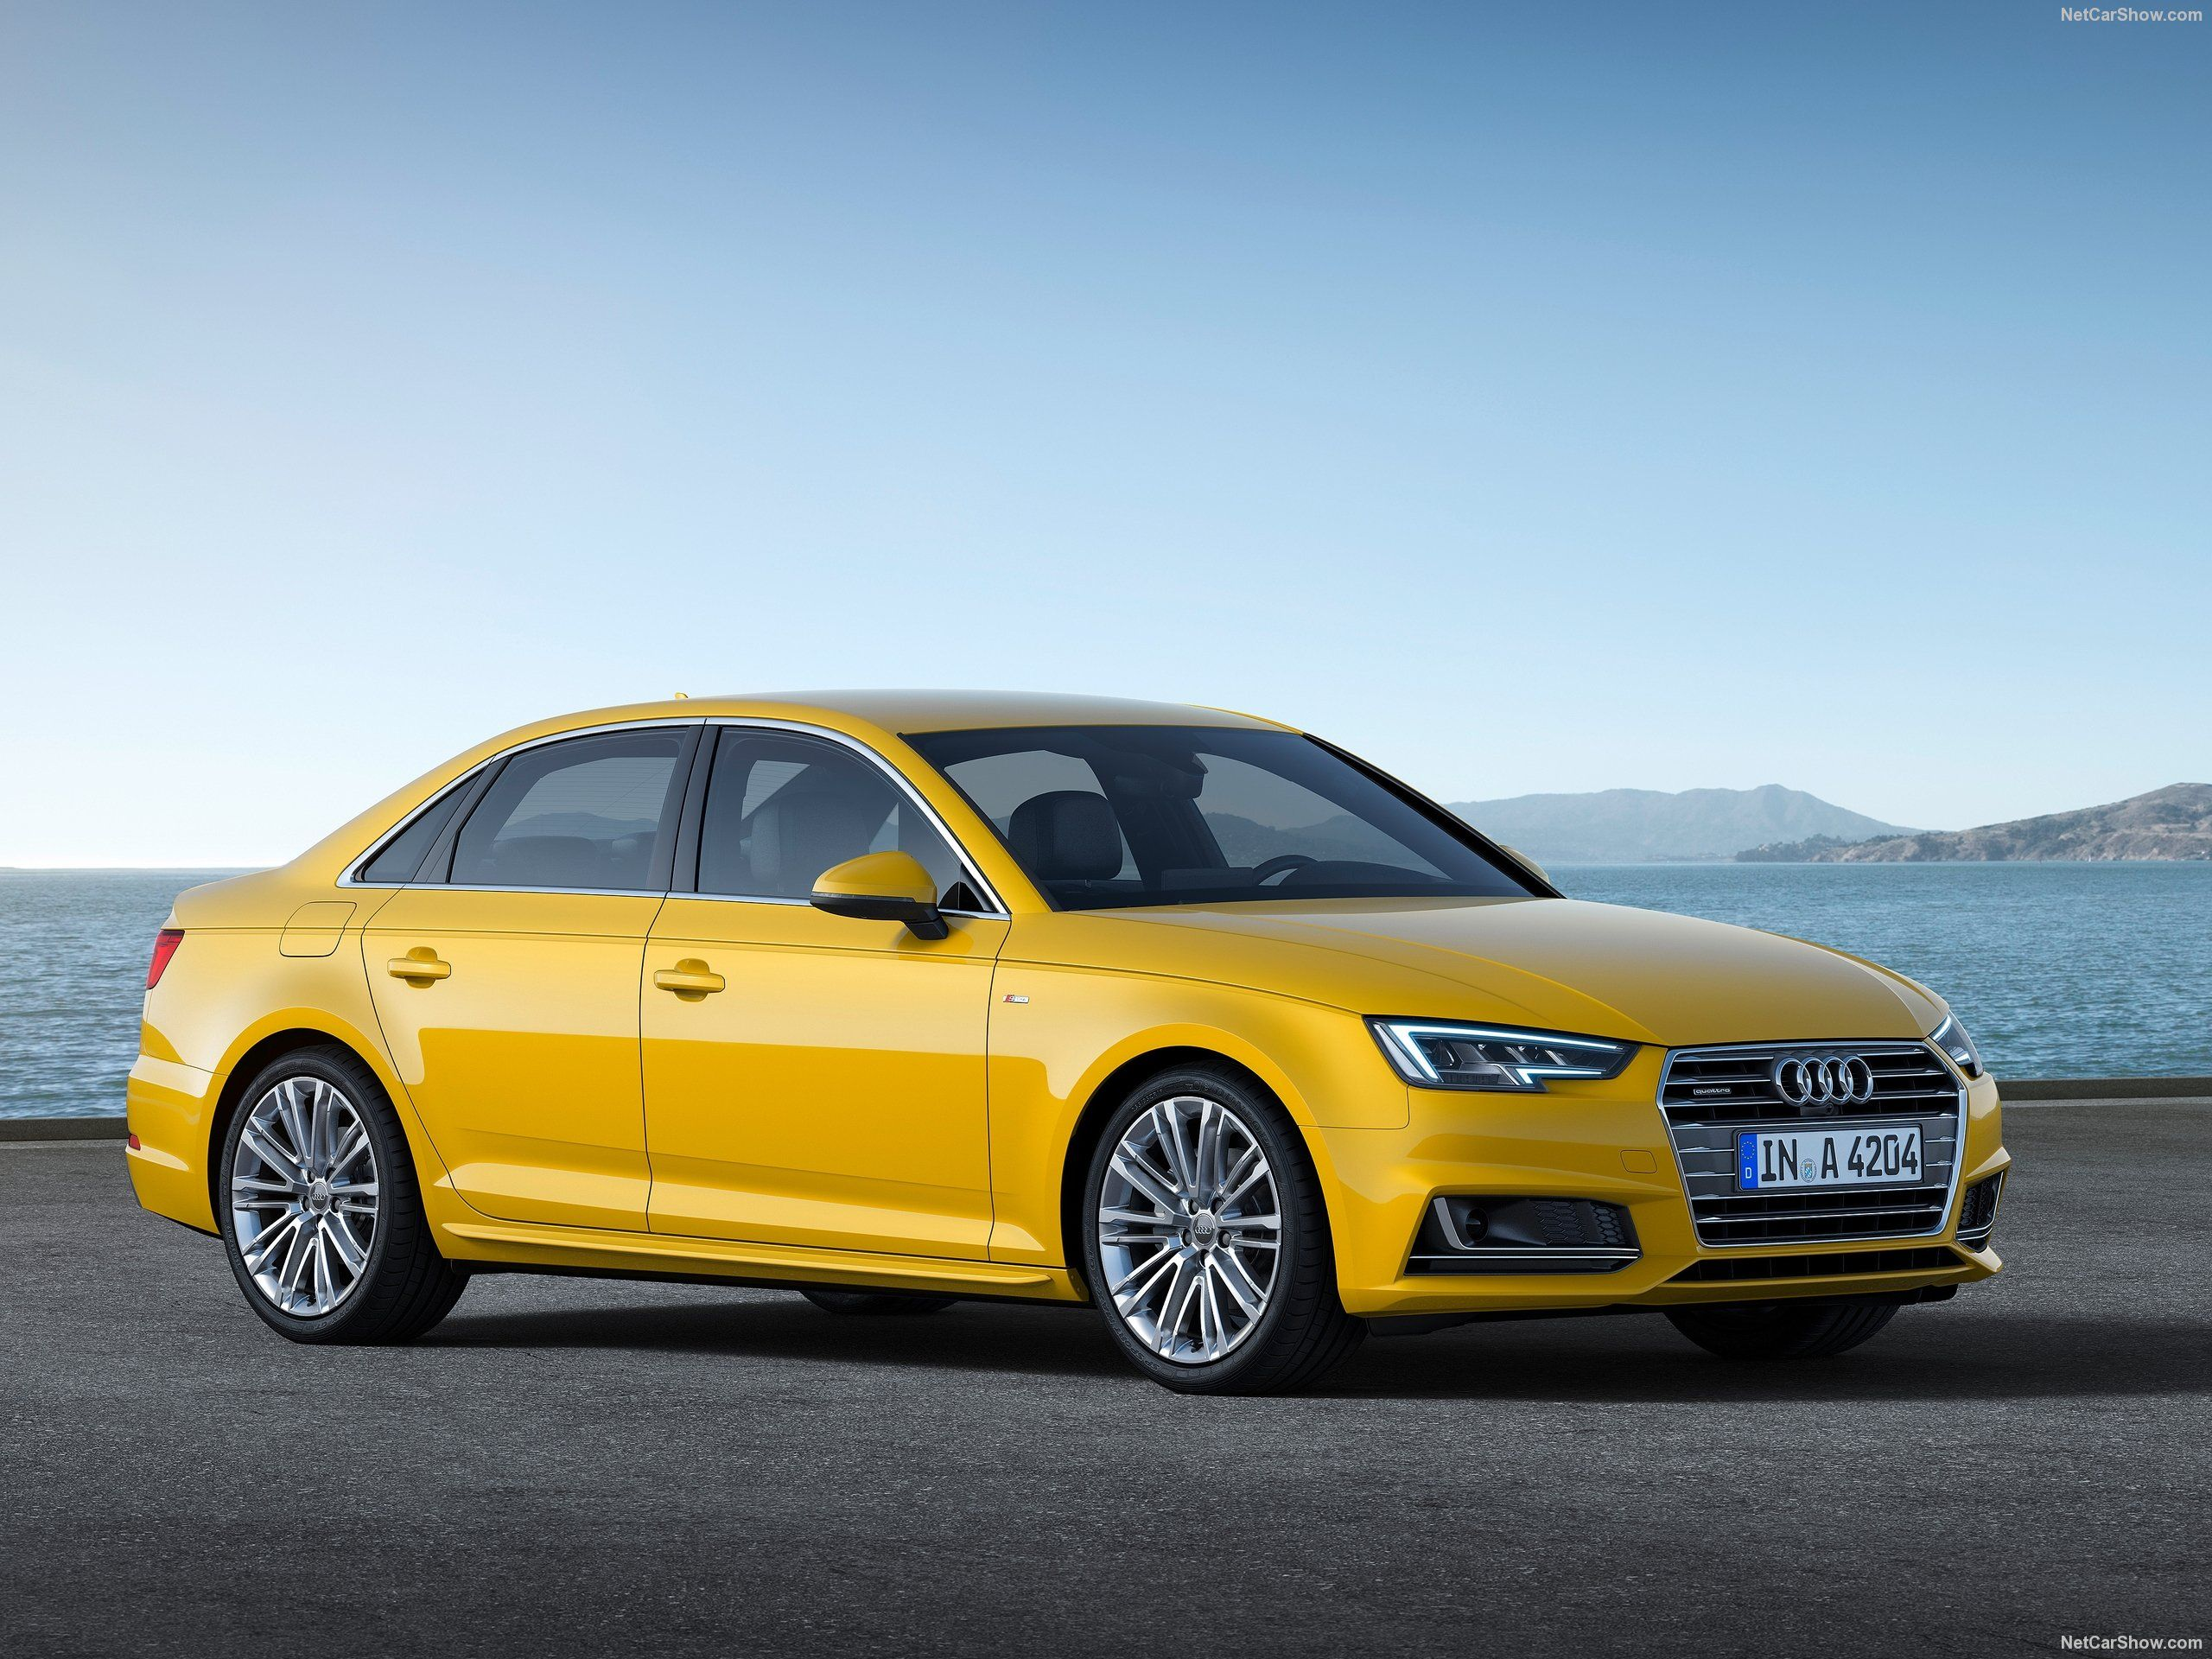 2017 Audi A4 Love The Solar Yellow Color Best Used As A Daily Commuter Audi A4 Audi Mercedes Amg Gt S